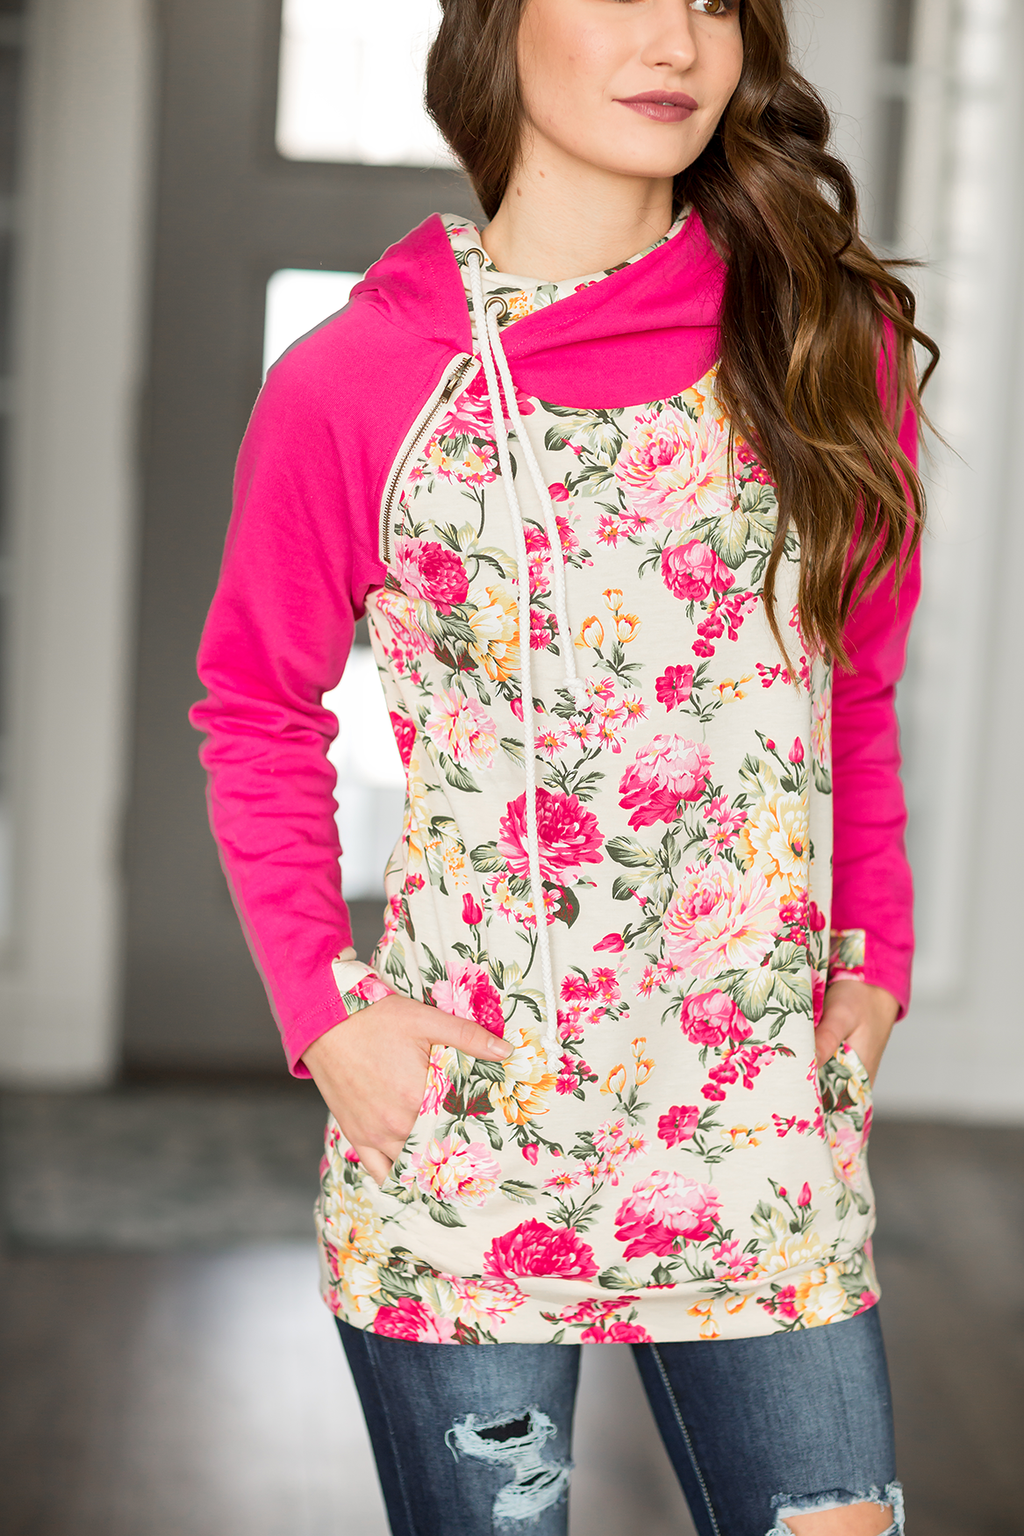 True Beauty Pink Floral Double Hooded Sweatshirt